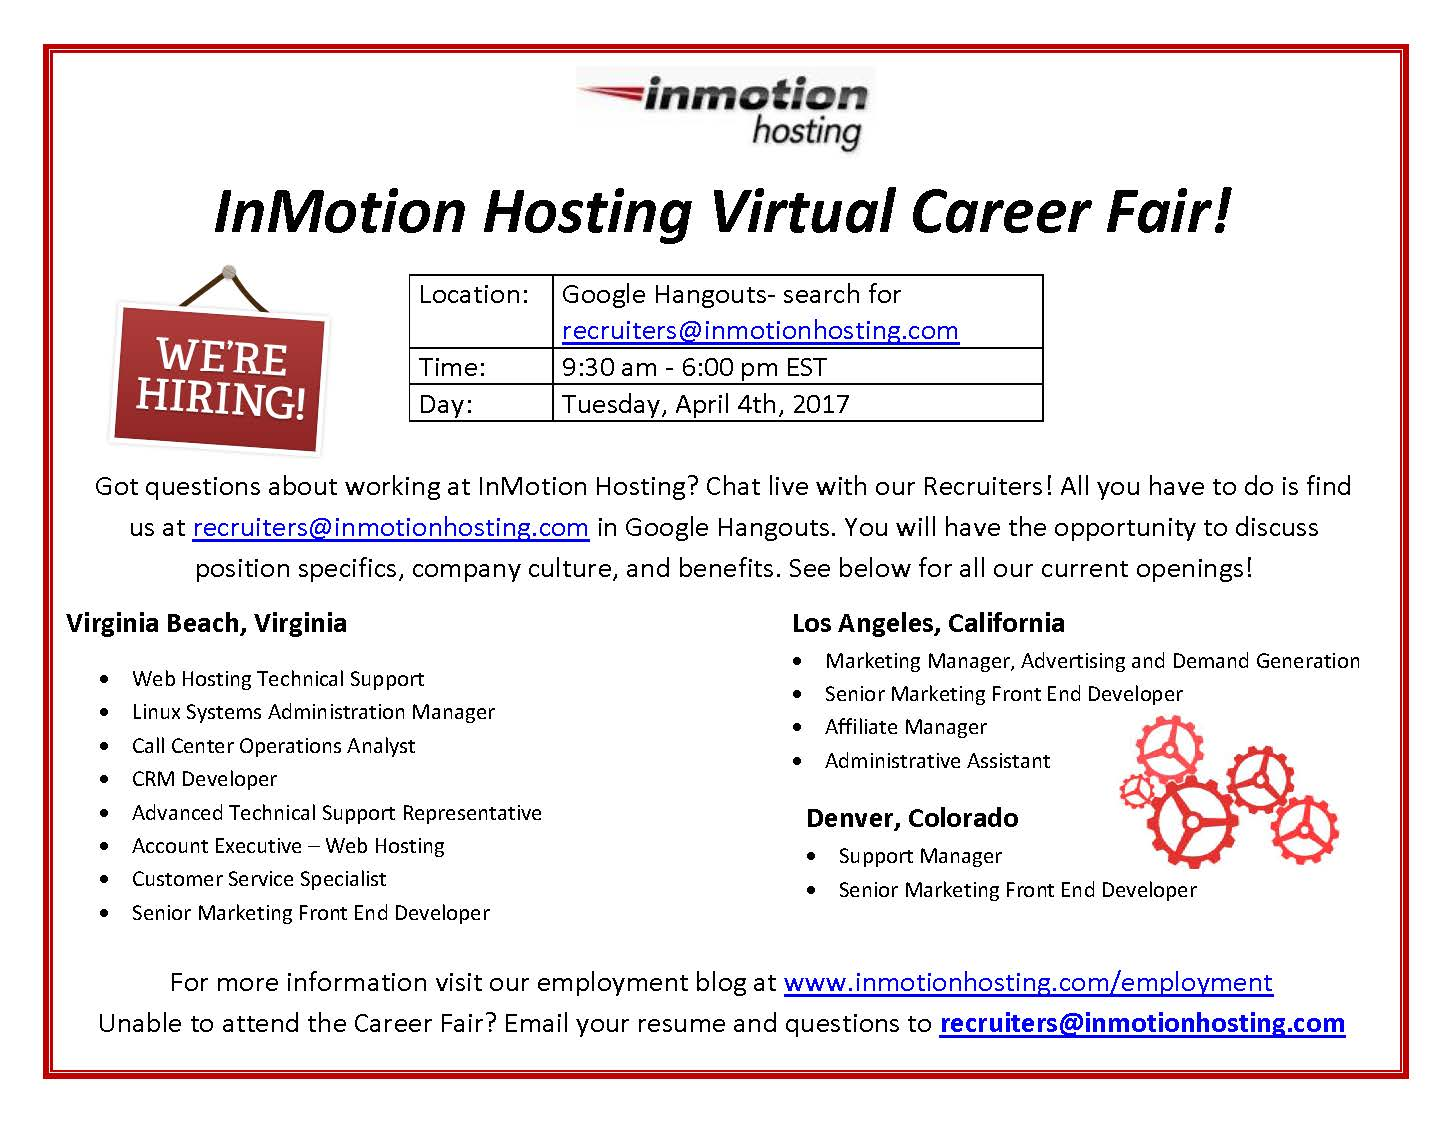 inmotion hosting virtual career fair - Affiliate Manager Resume